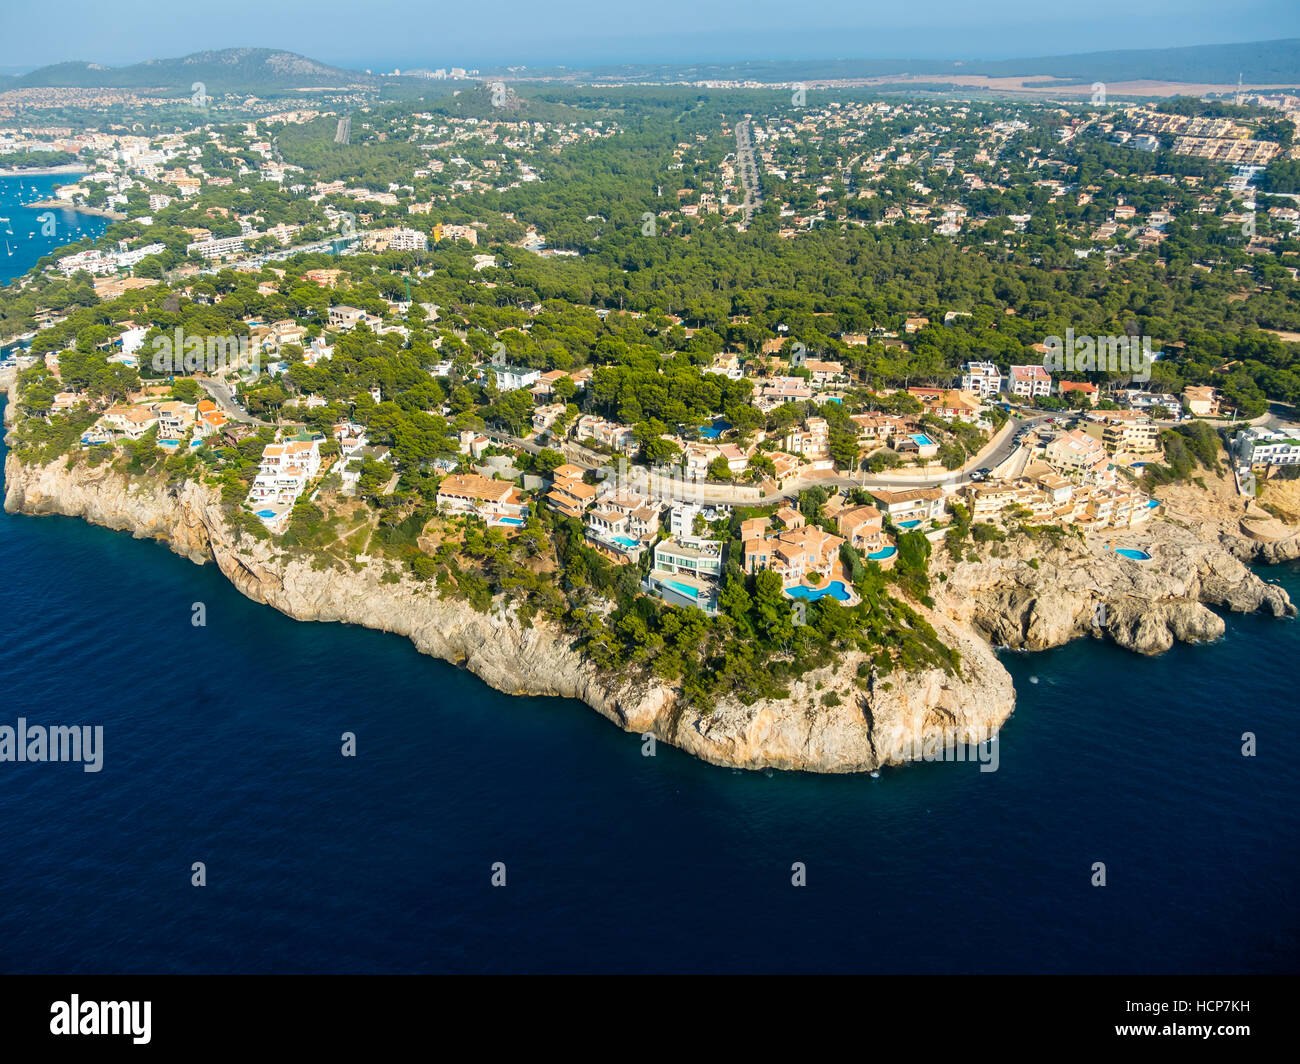 Aerial photograph, view of Santa Ponca, Mallorca, Balearic Islands, Spain - Stock Image